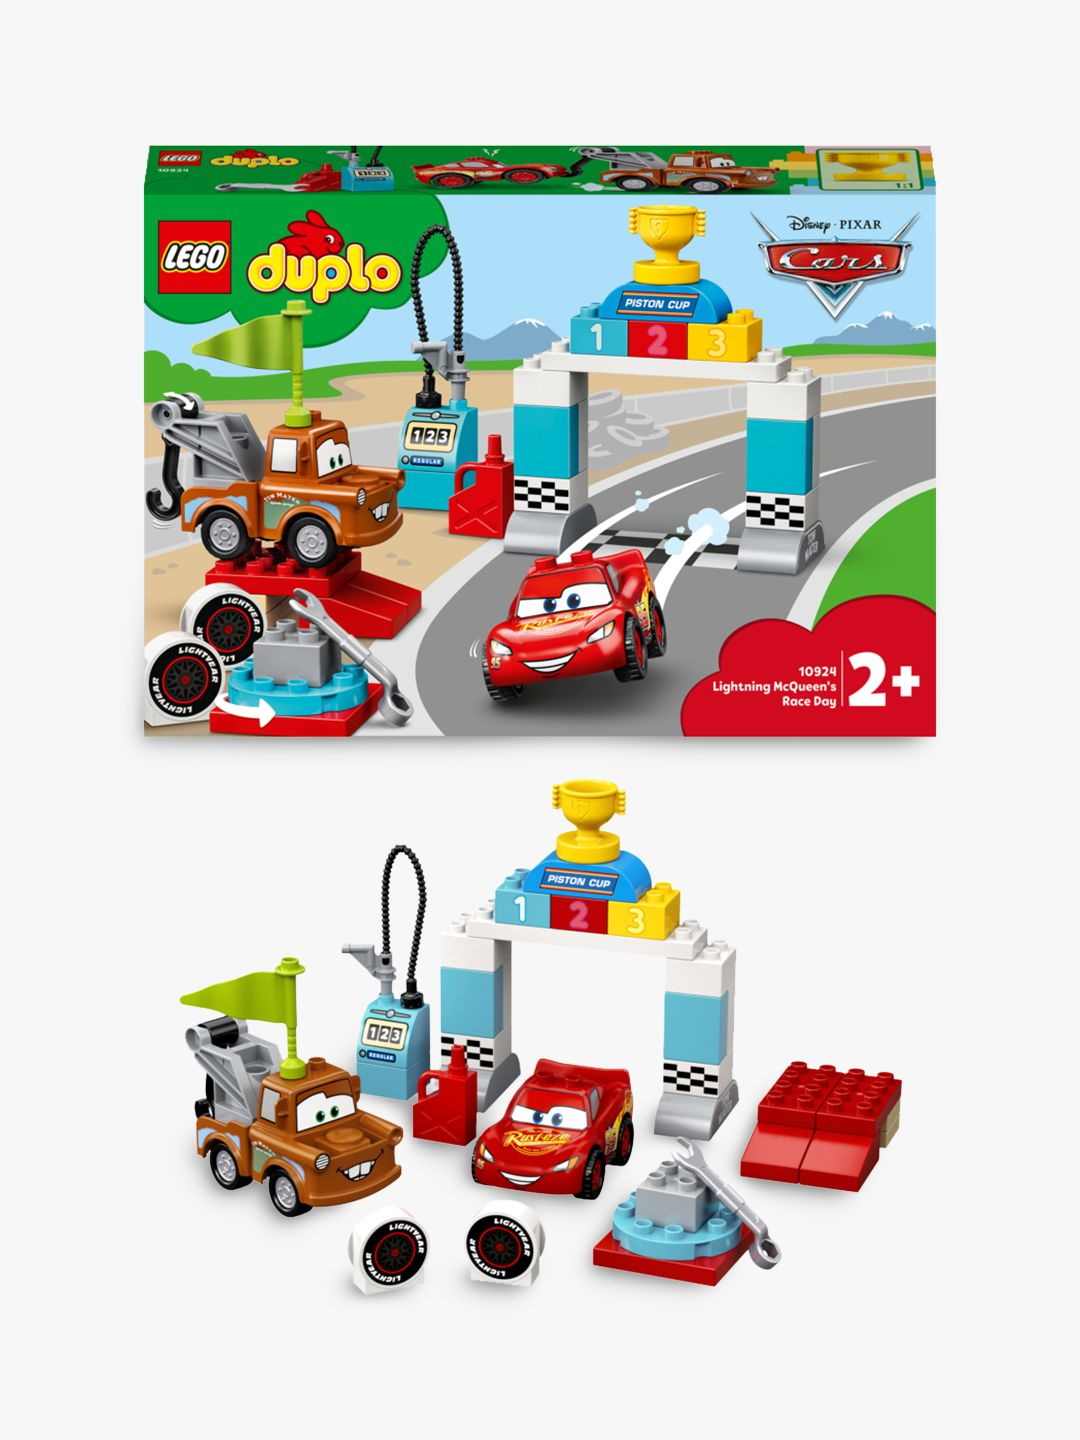 Lego Duplo 10924 Lightning Mcqueen S Race Day At John Lewis Partners